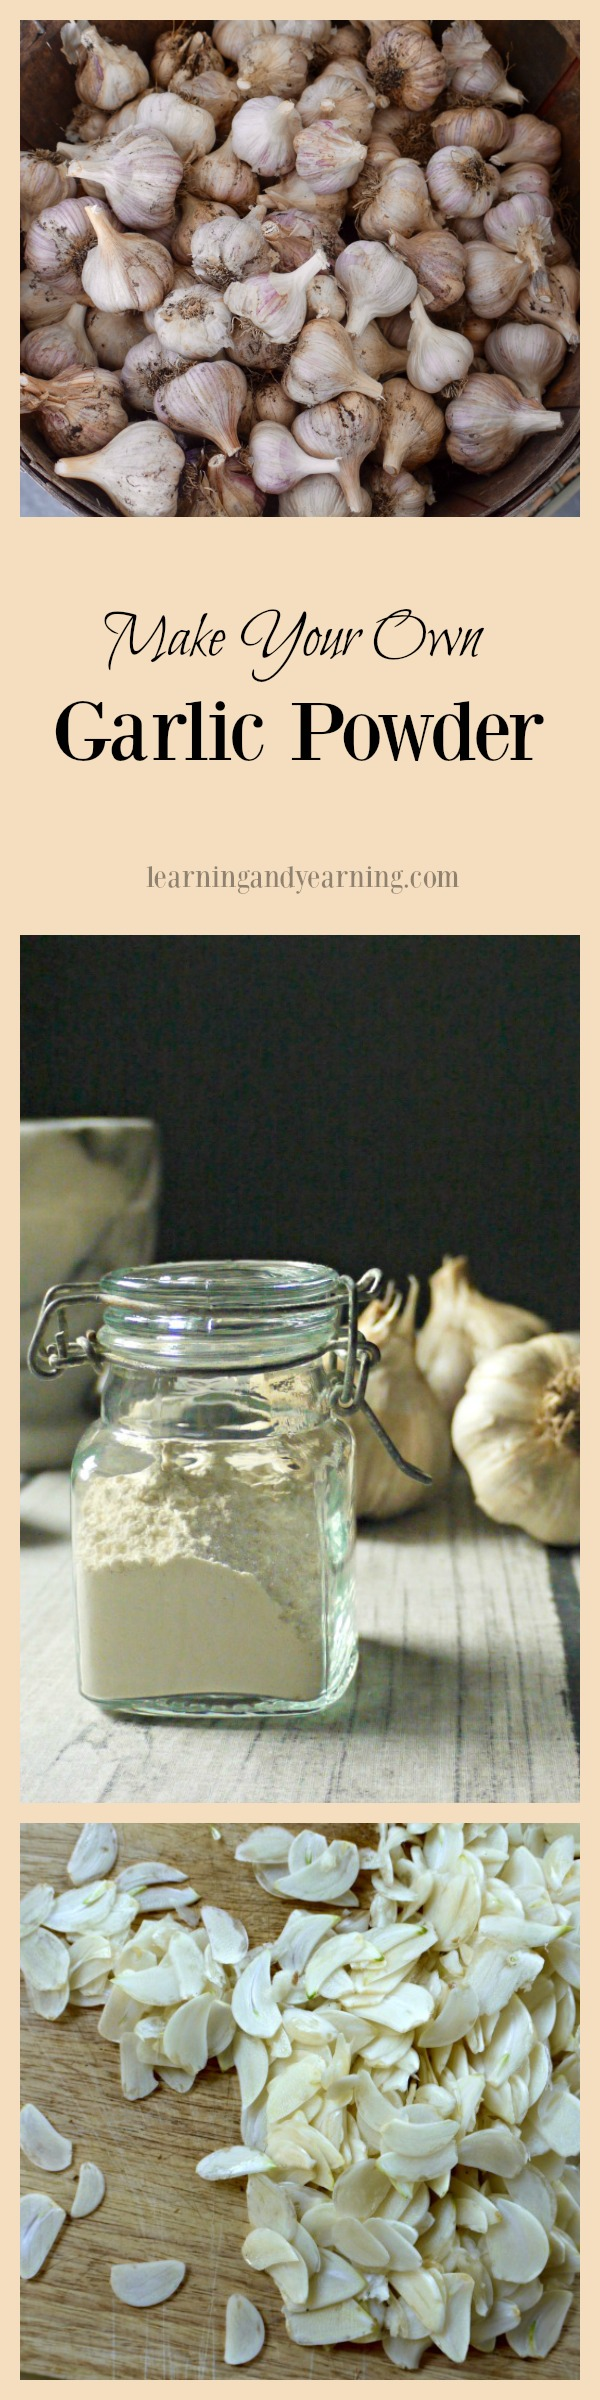 Making your own garlic powder is straight-forward and simple. It can be time consuming, but the right tools really help to make quick work of the task.